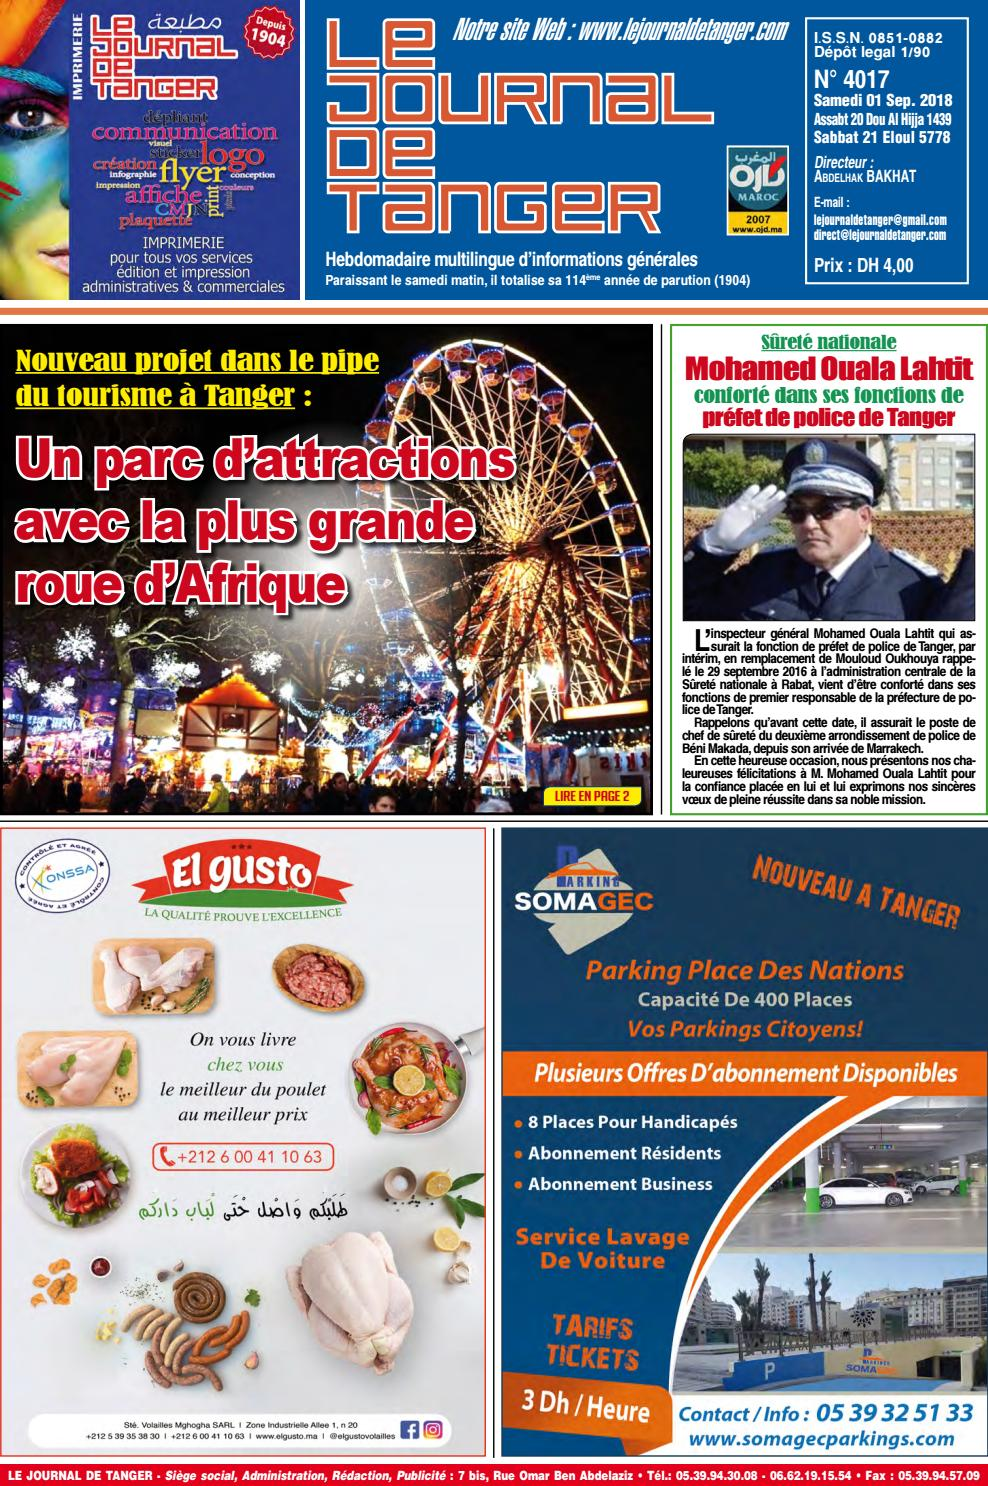 84cc41c0b Le journal de Tanger 01 septembre 2018 by Le Journal de Tanger - issuu